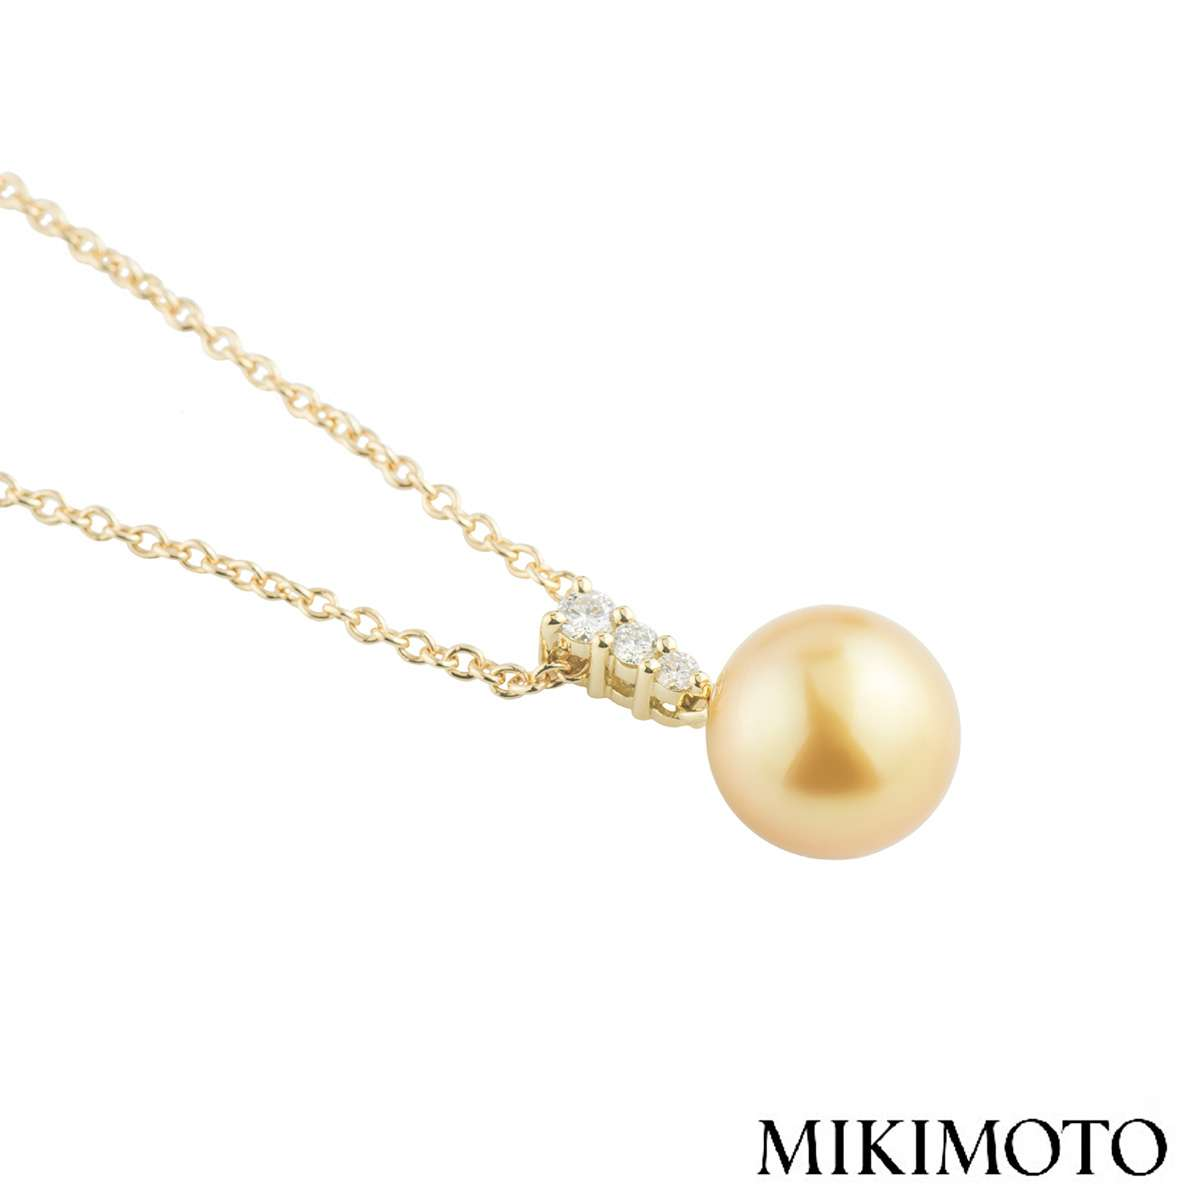 Mikimoto Diamond and Pearl Morning Dew Pendant 0.24ct E+/VS1